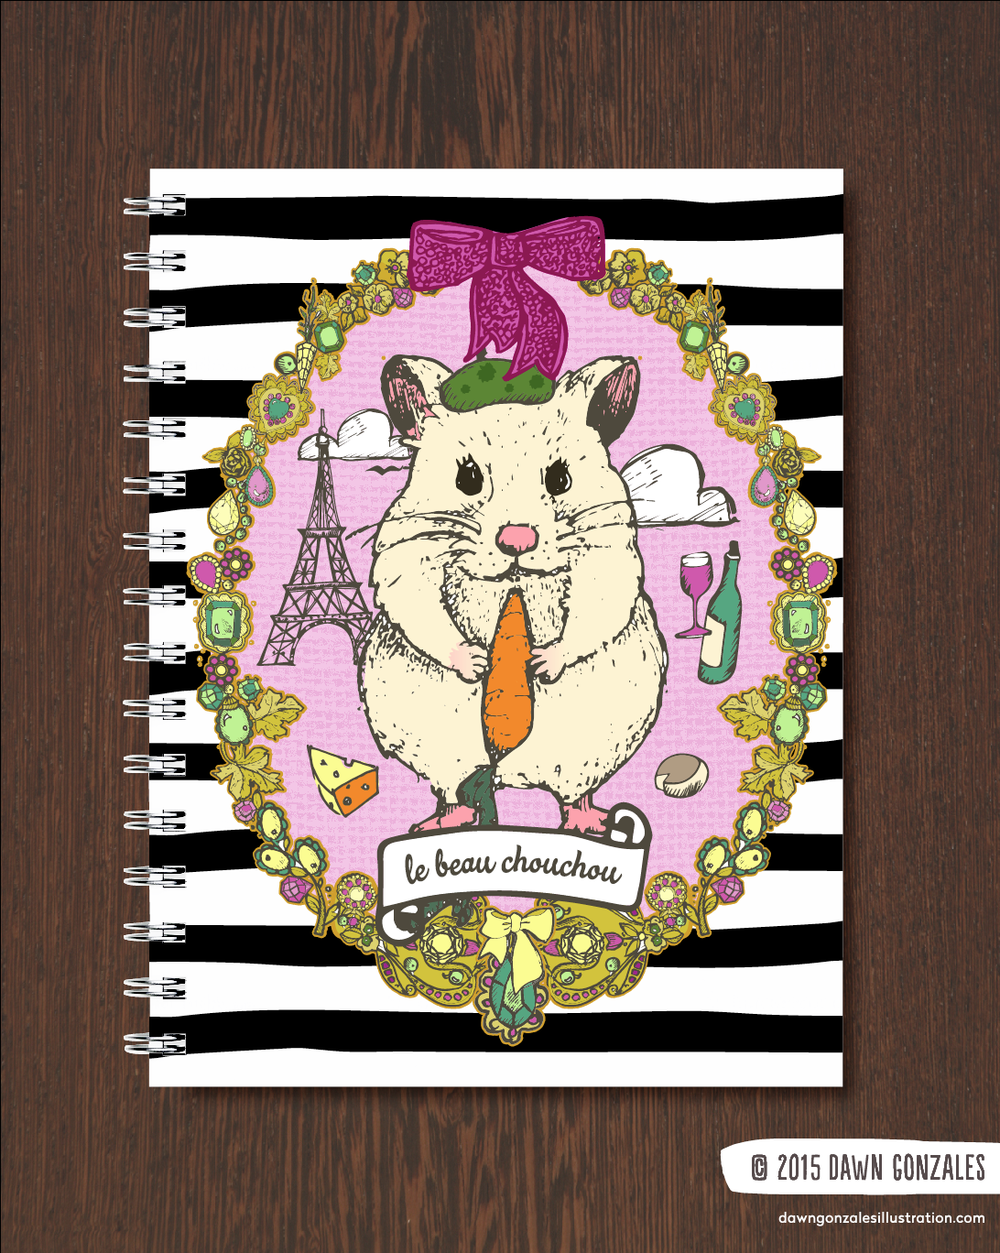 Le Beau Chou Chou Hamster Journal Cover by Dawn Gonzales